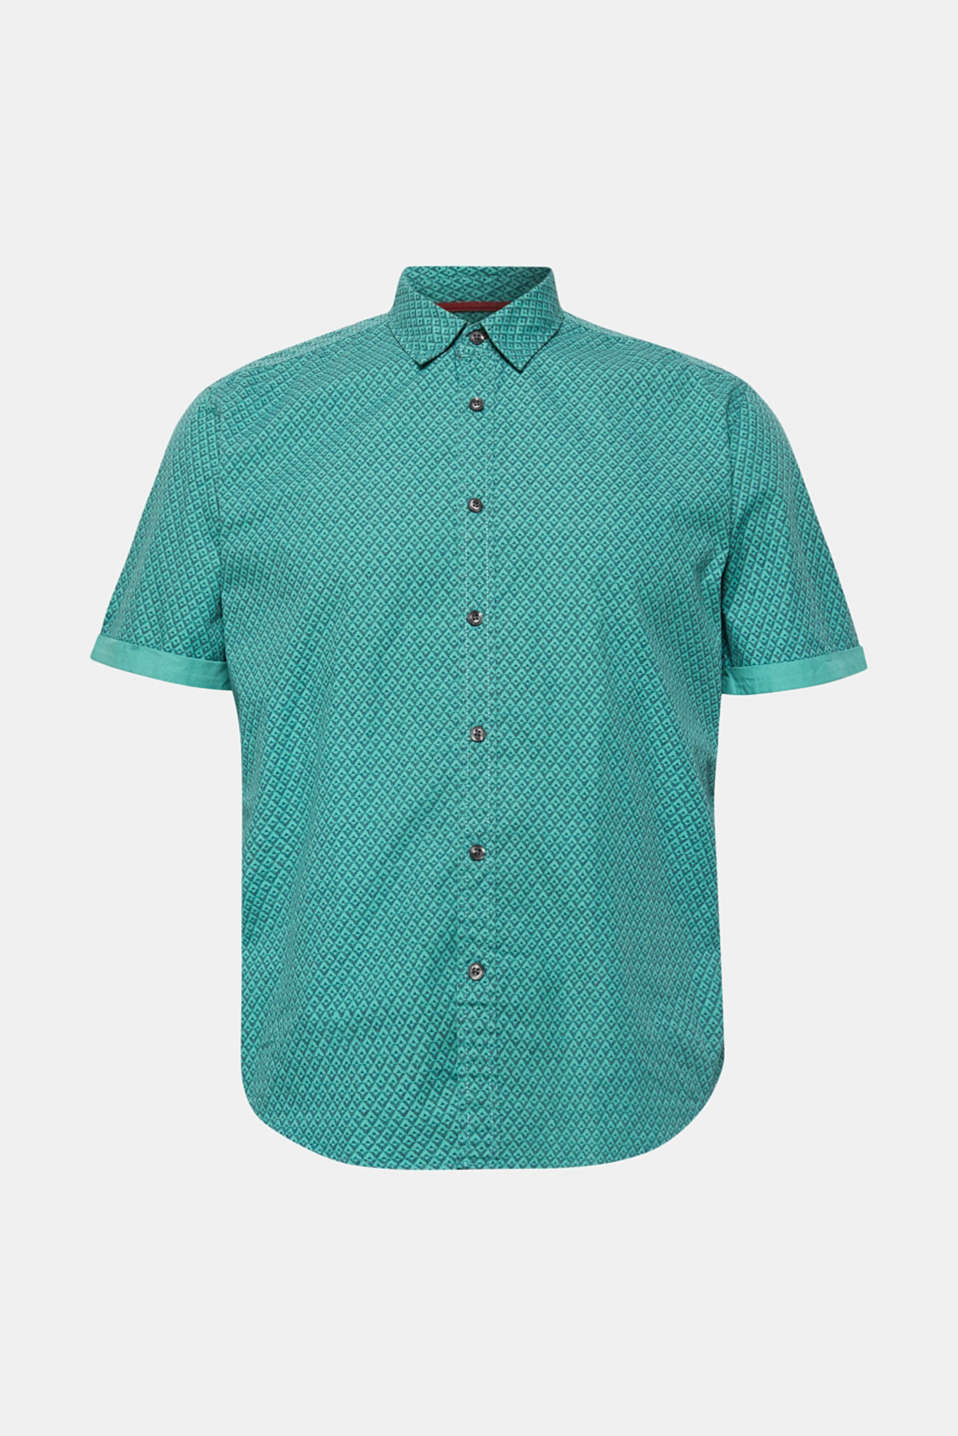 Shirts woven Slim fit, AQUA GREEN, detail image number 6